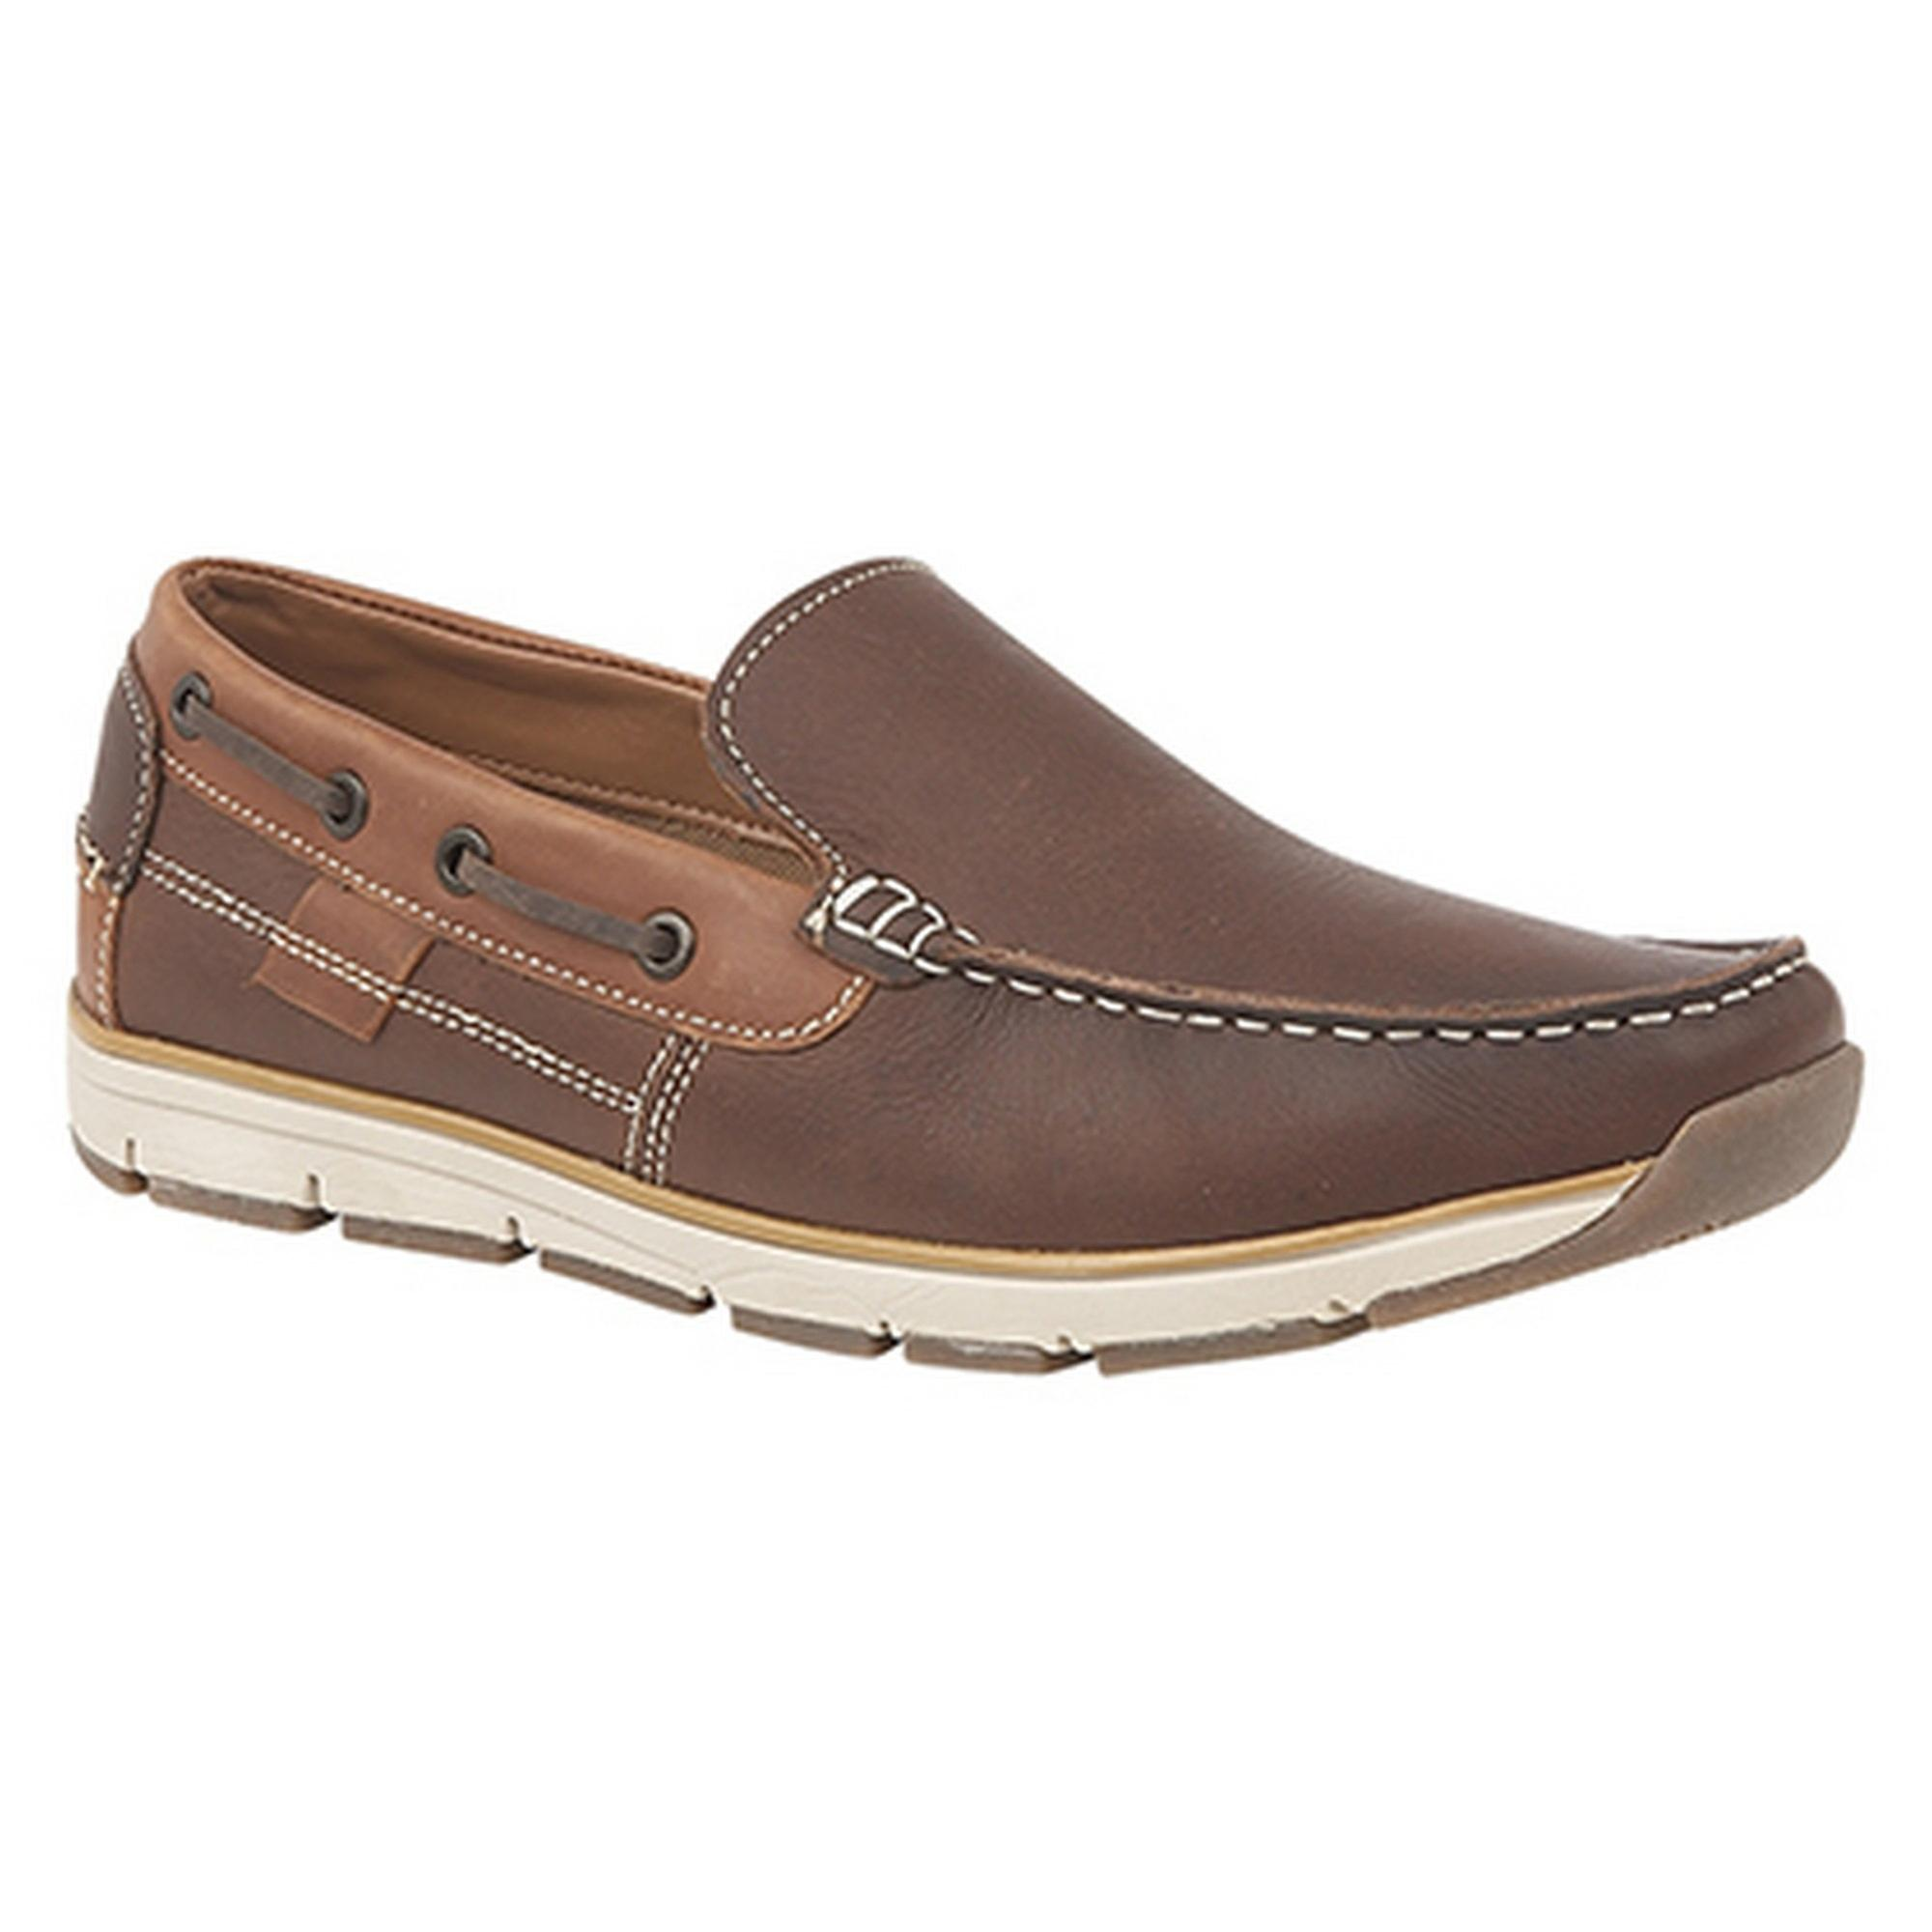 Roamers Superlight Mens Leather Slip On Apron Tab Moccasin Leisure Shoes ECcDnm